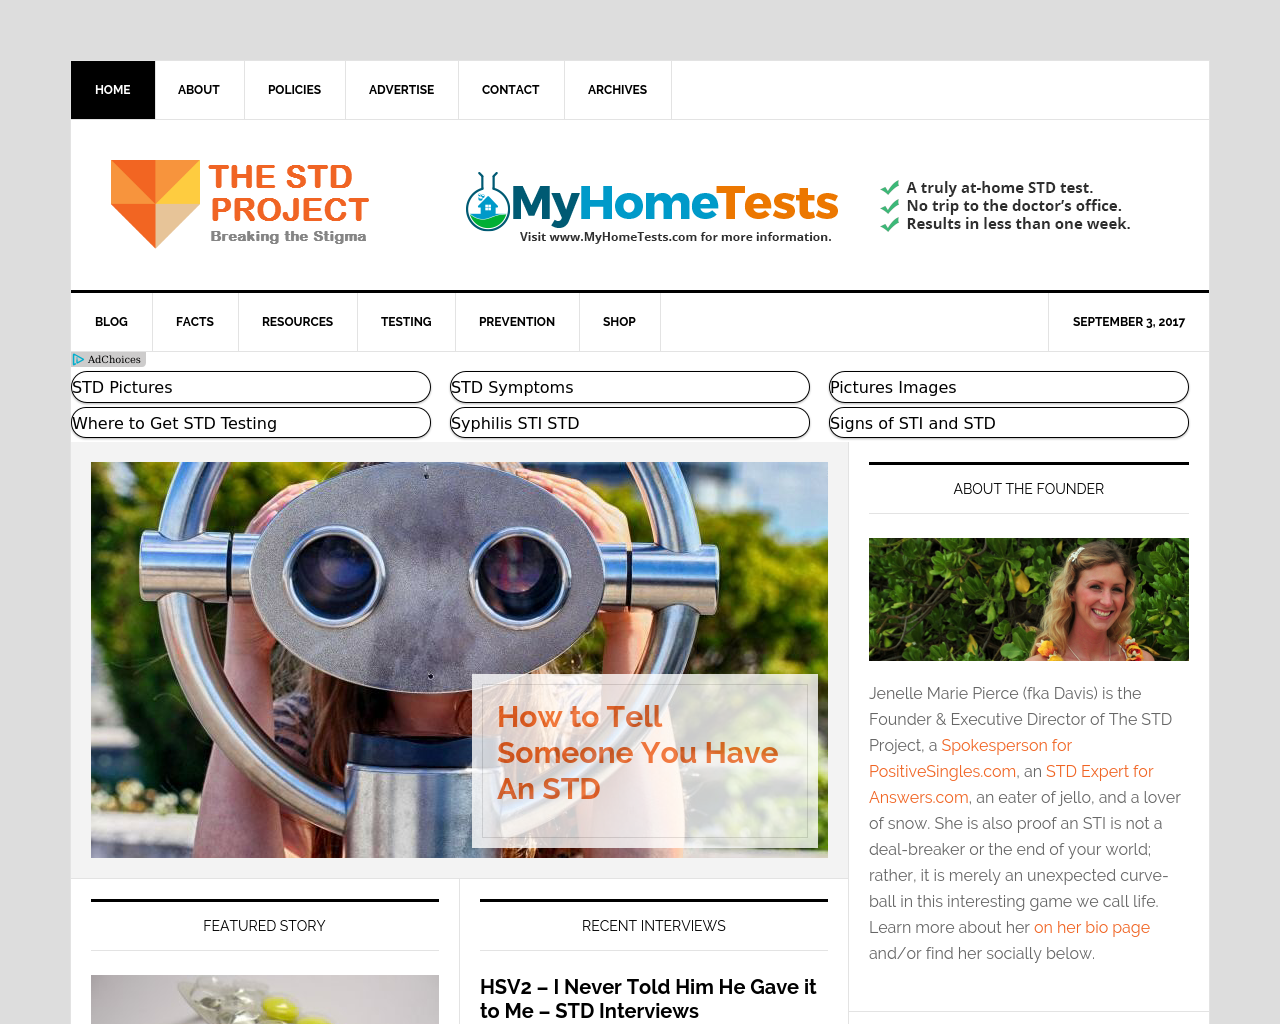 THE-STD-PROJECT-Breaking-the-Stigma-Advertising-Reviews-Pricing